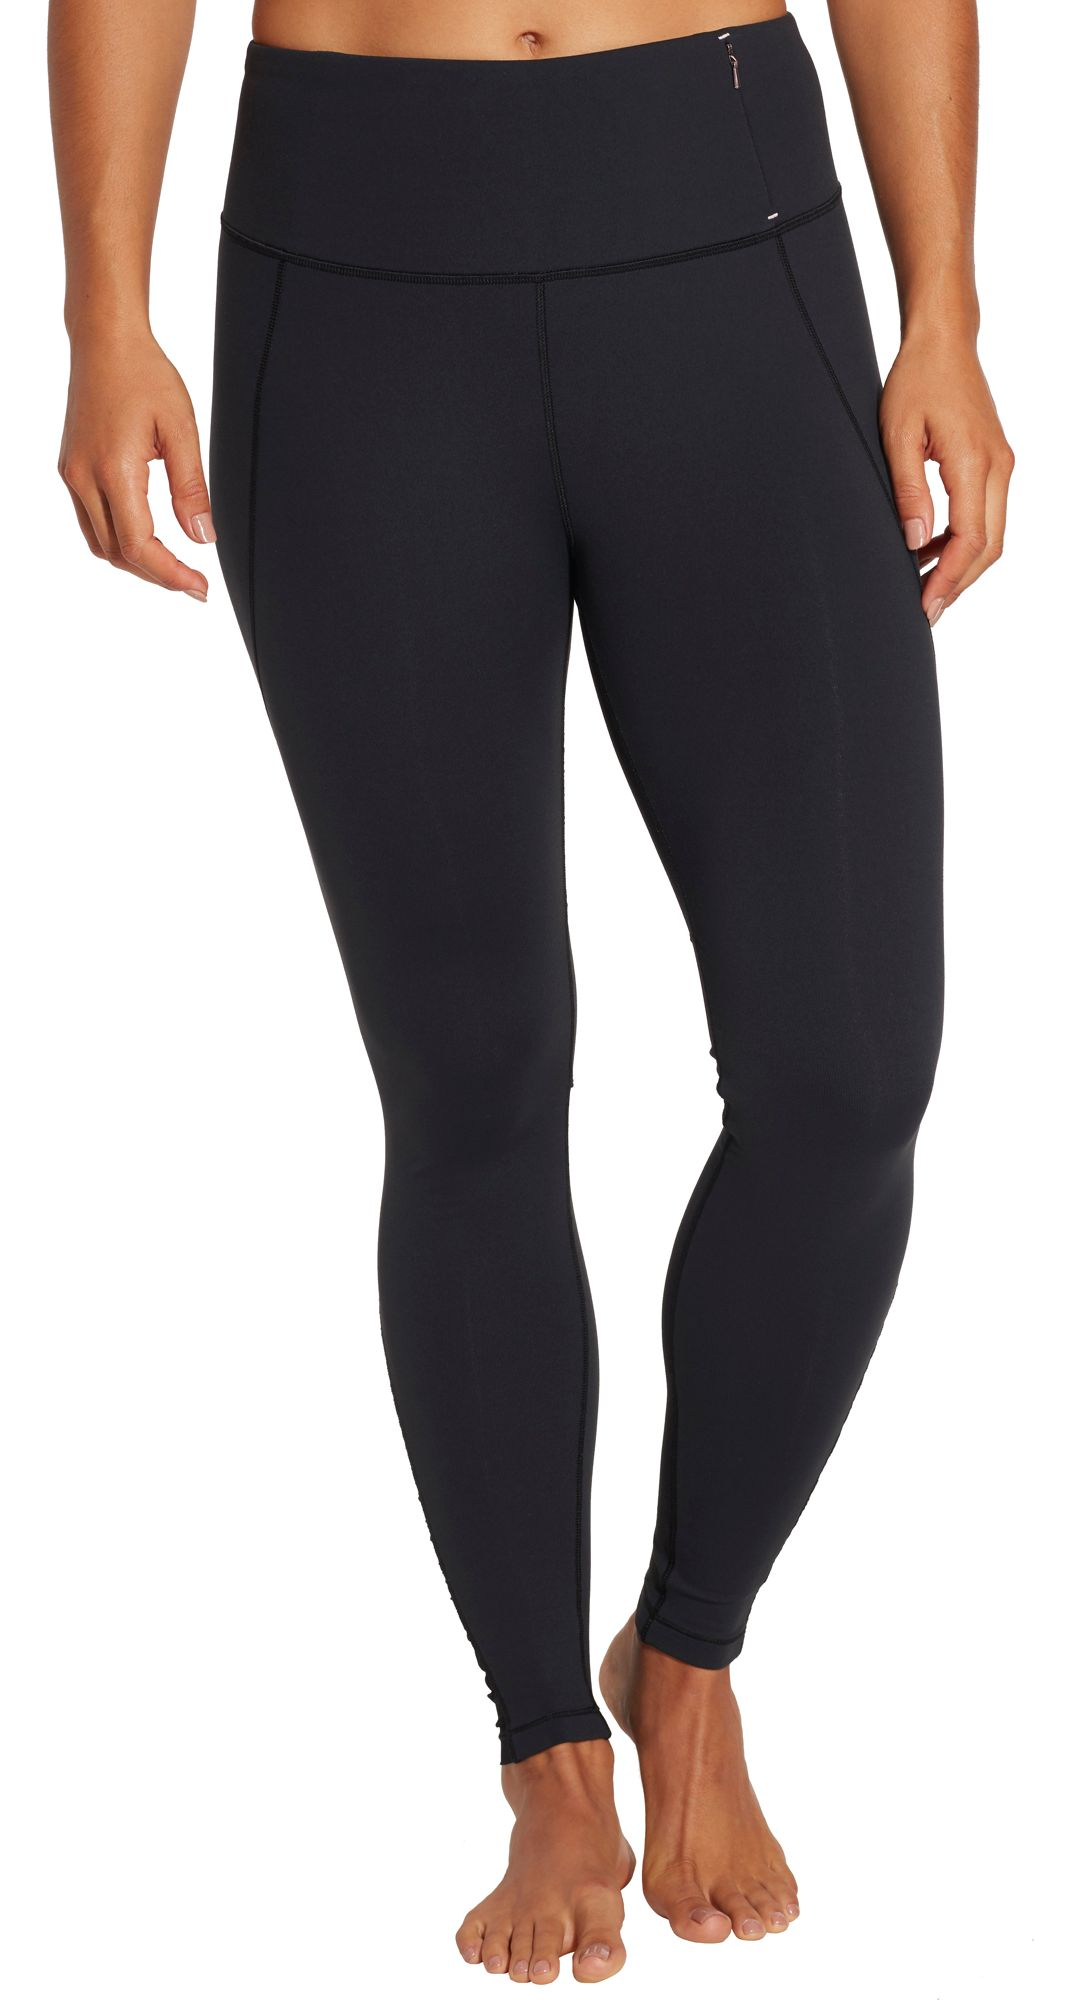 4c7eb07648 CALIA by Carrie Underwood Women's Essential High Waist Ruched Leggings 1